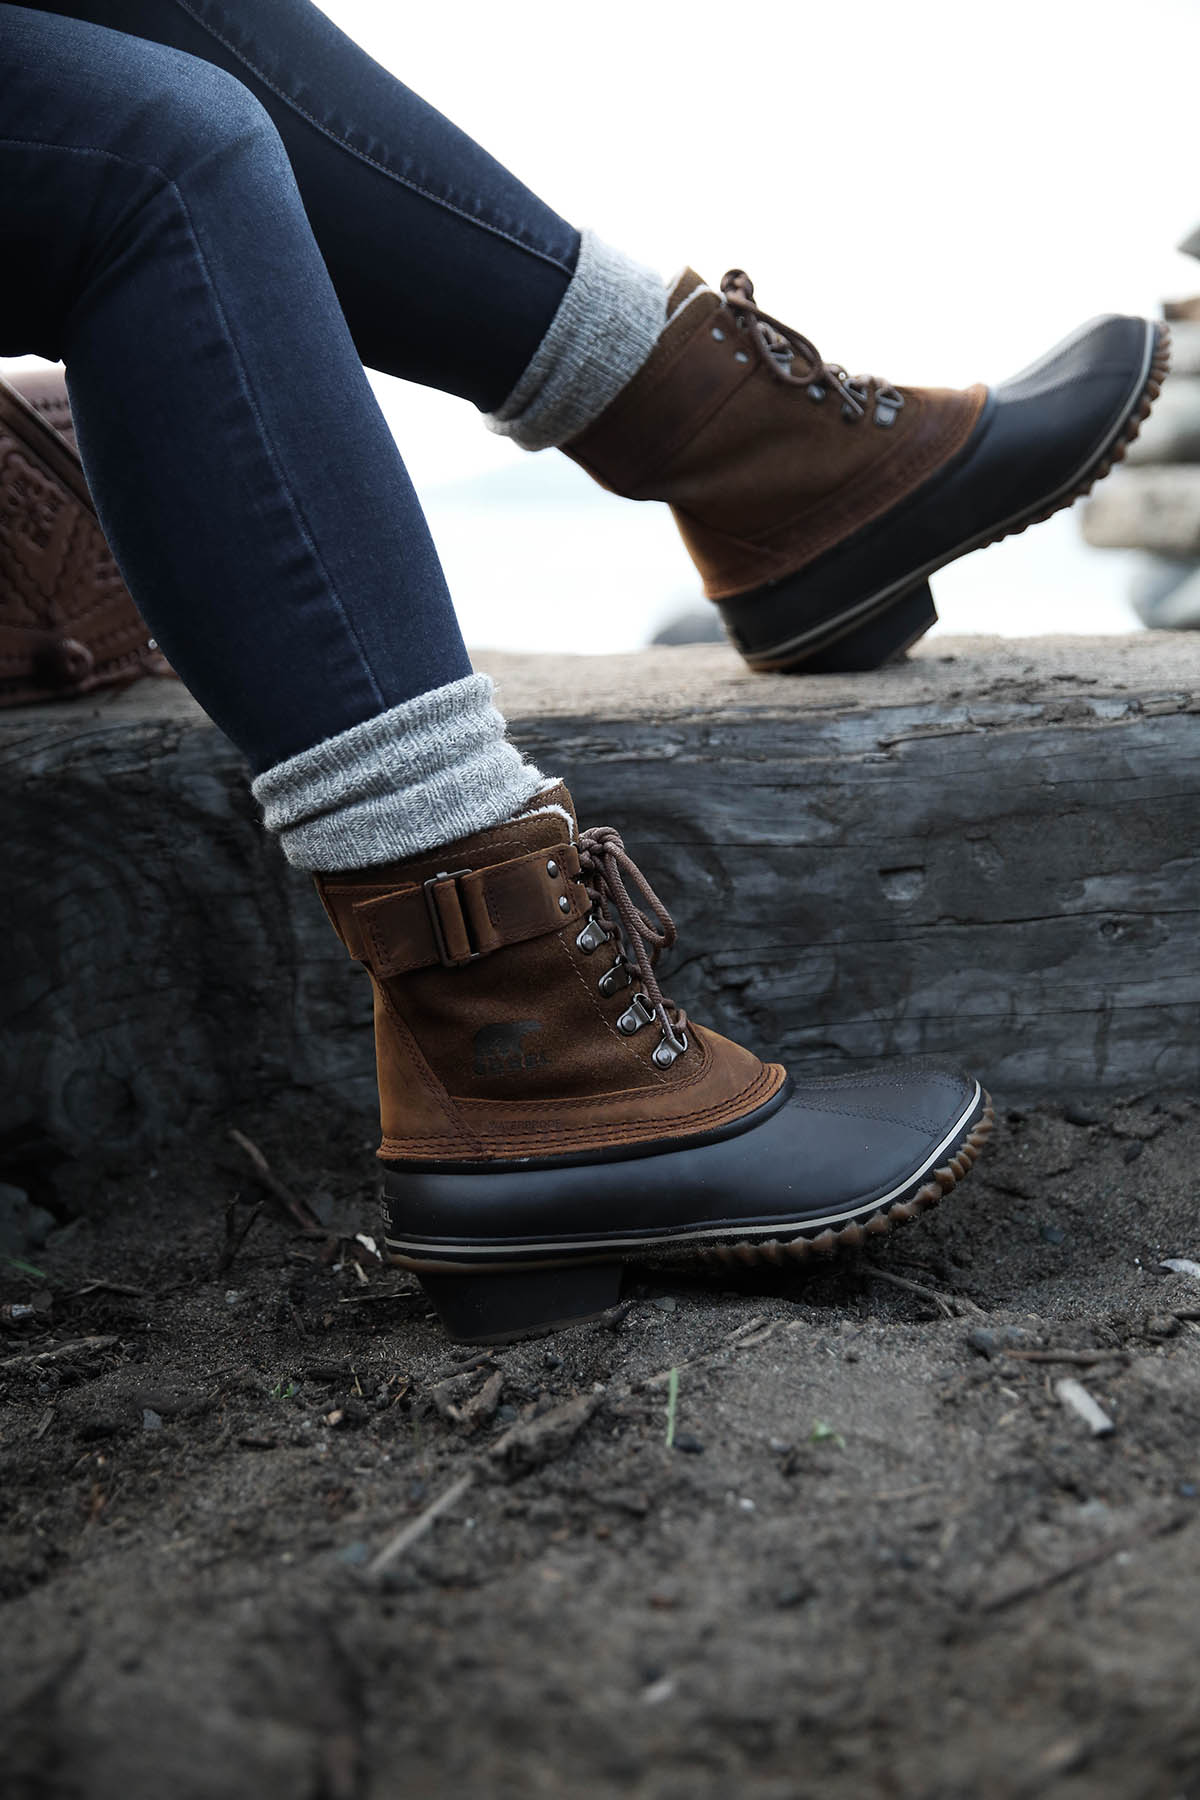 sorel boots with socks and jeans